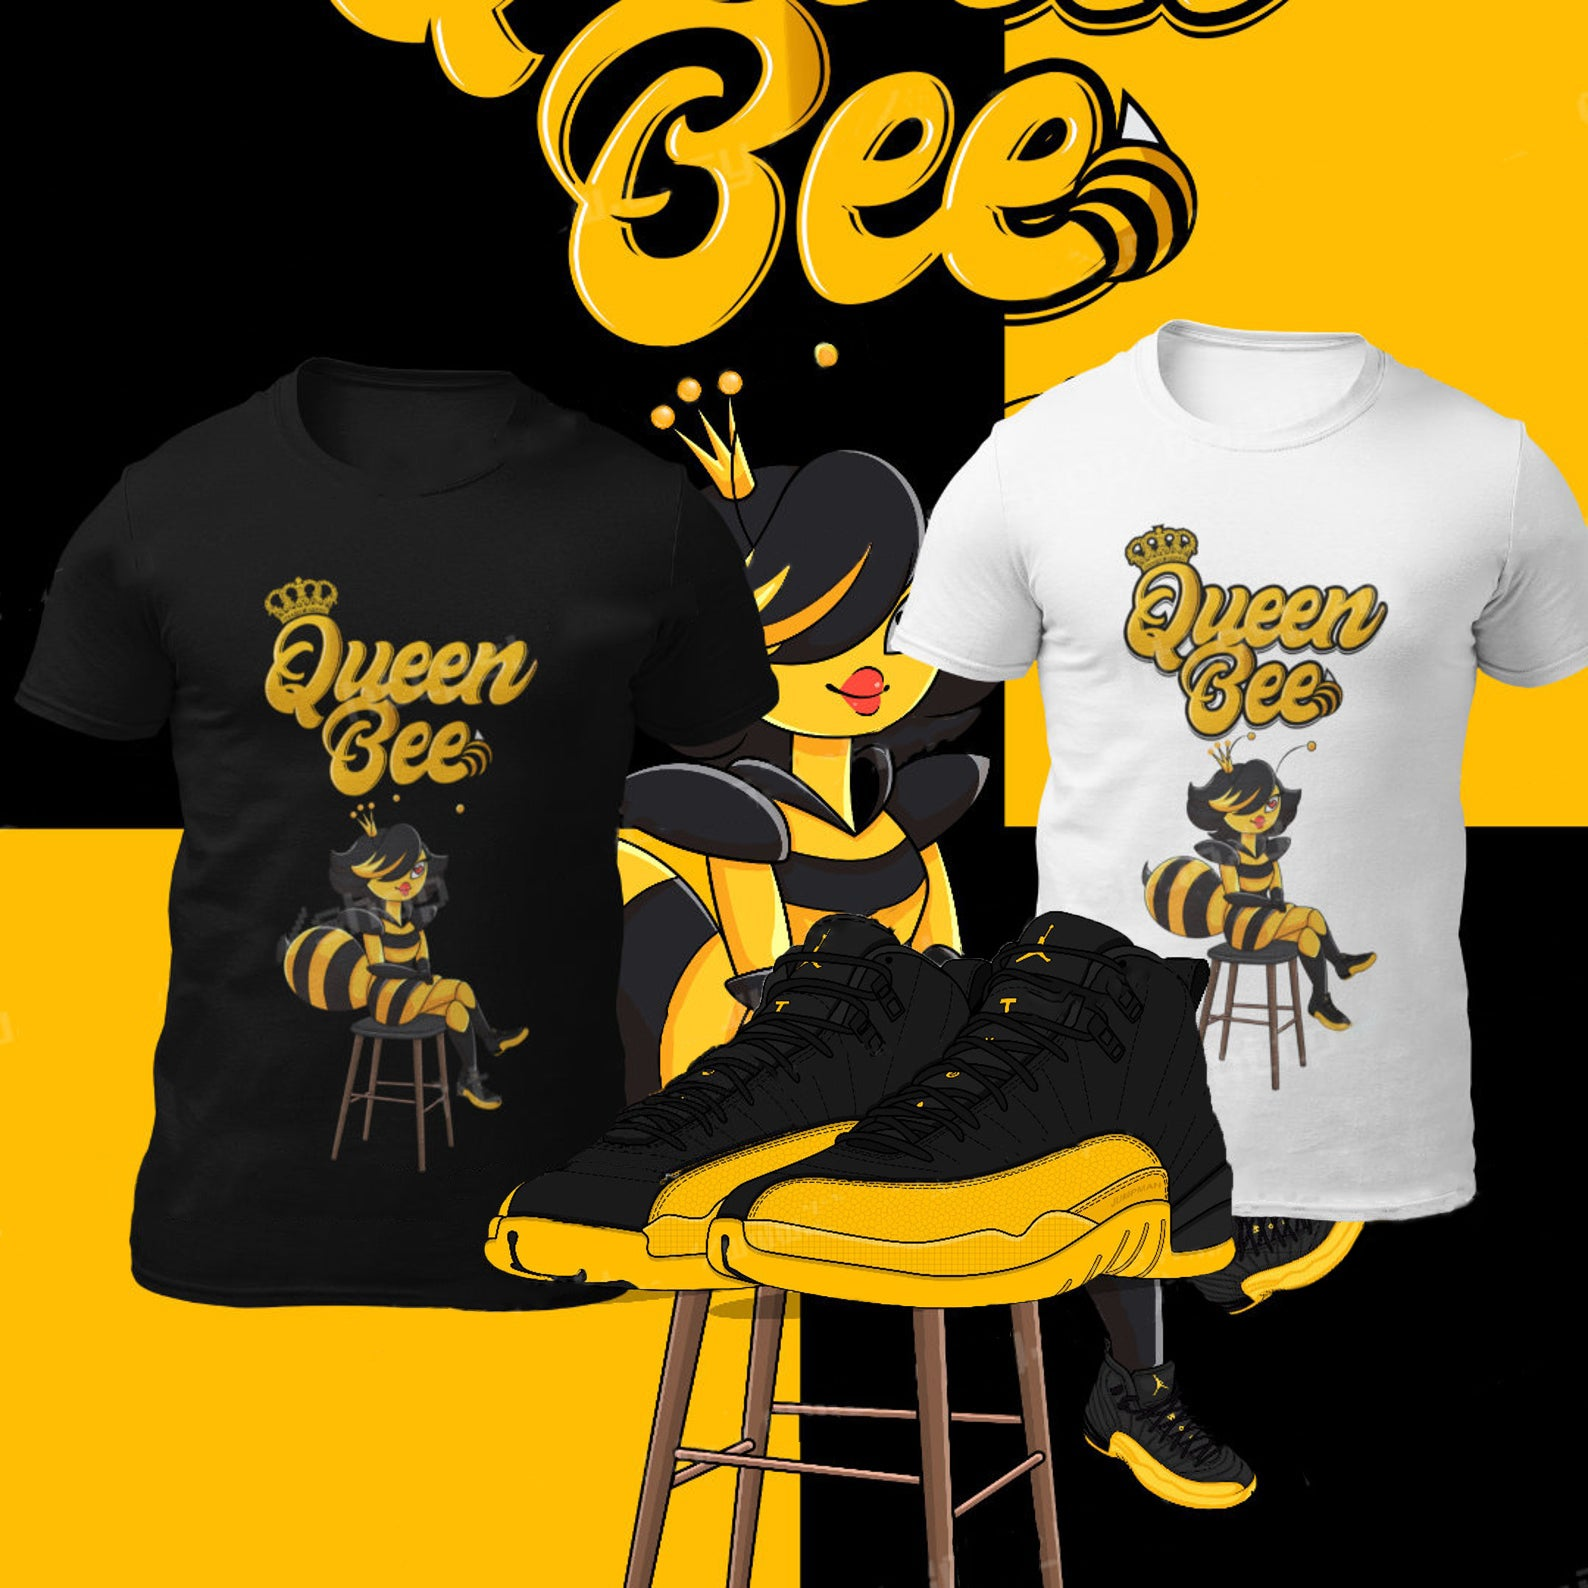 Queen bee print sneaker matching tee